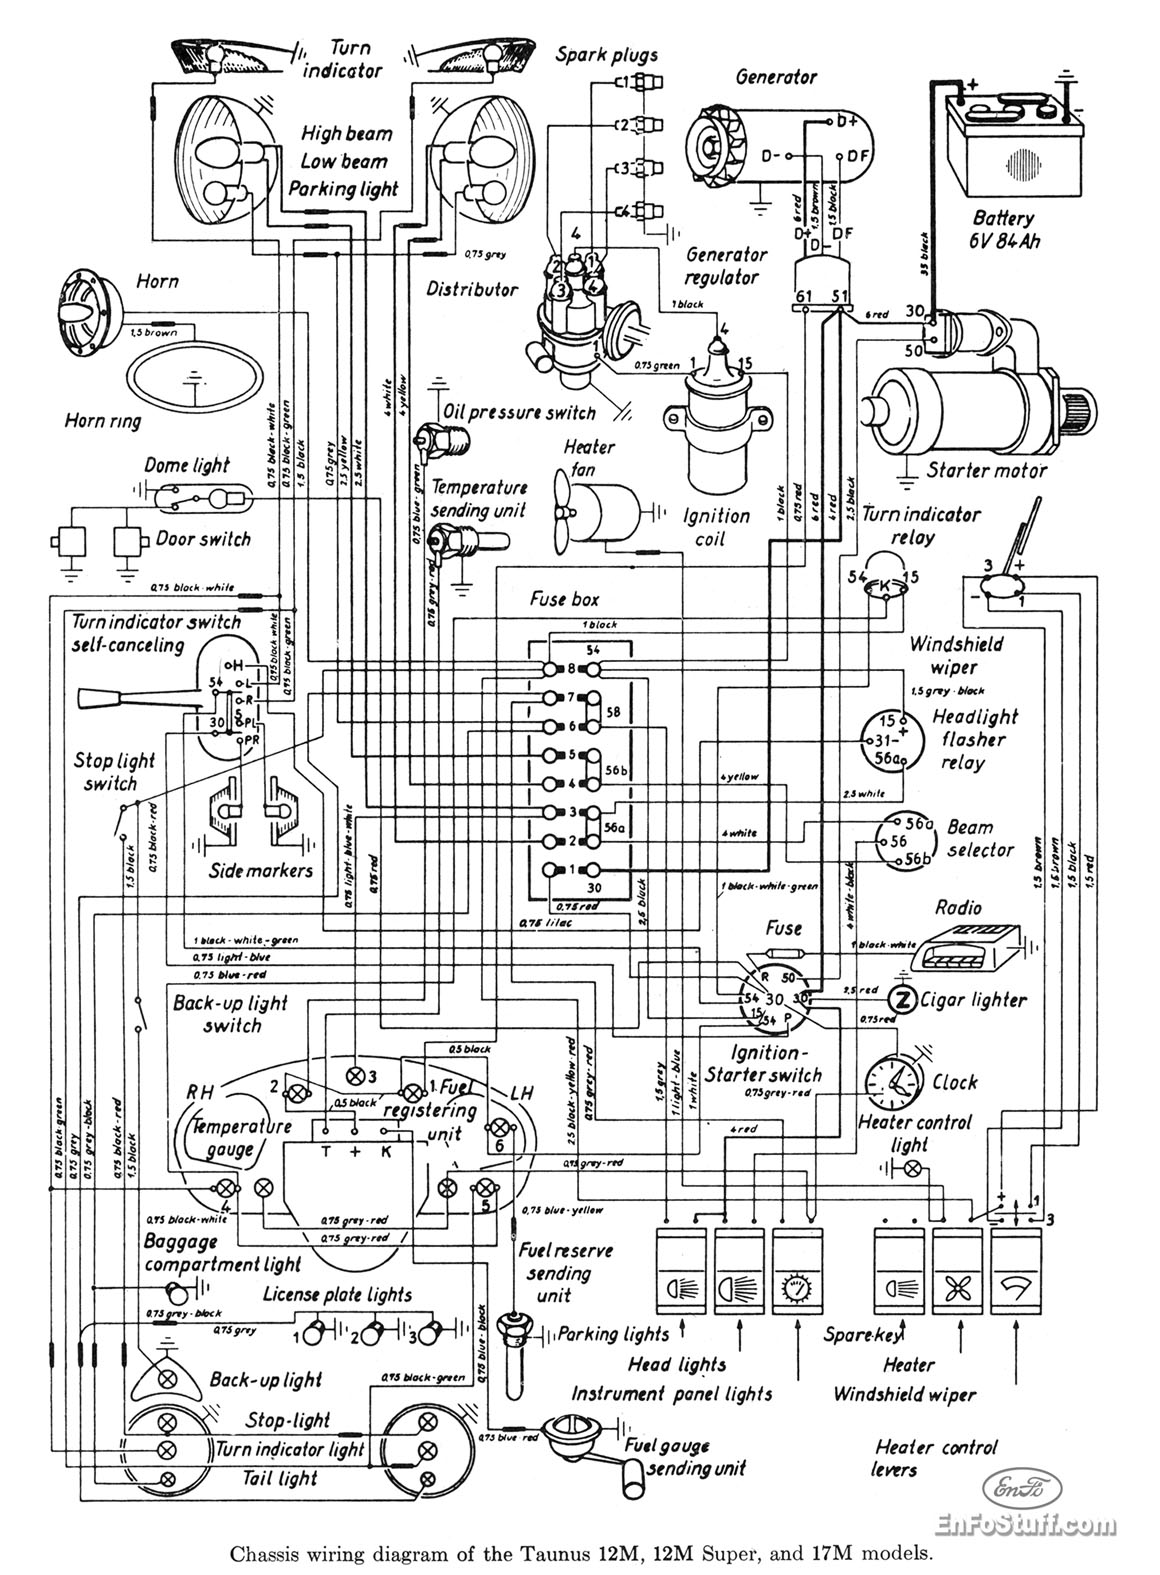 1956 Willys Truck Wiring Diagram Best Secret 1954 Chevy Harness 1948 Wagon Free Engine Image Pickup